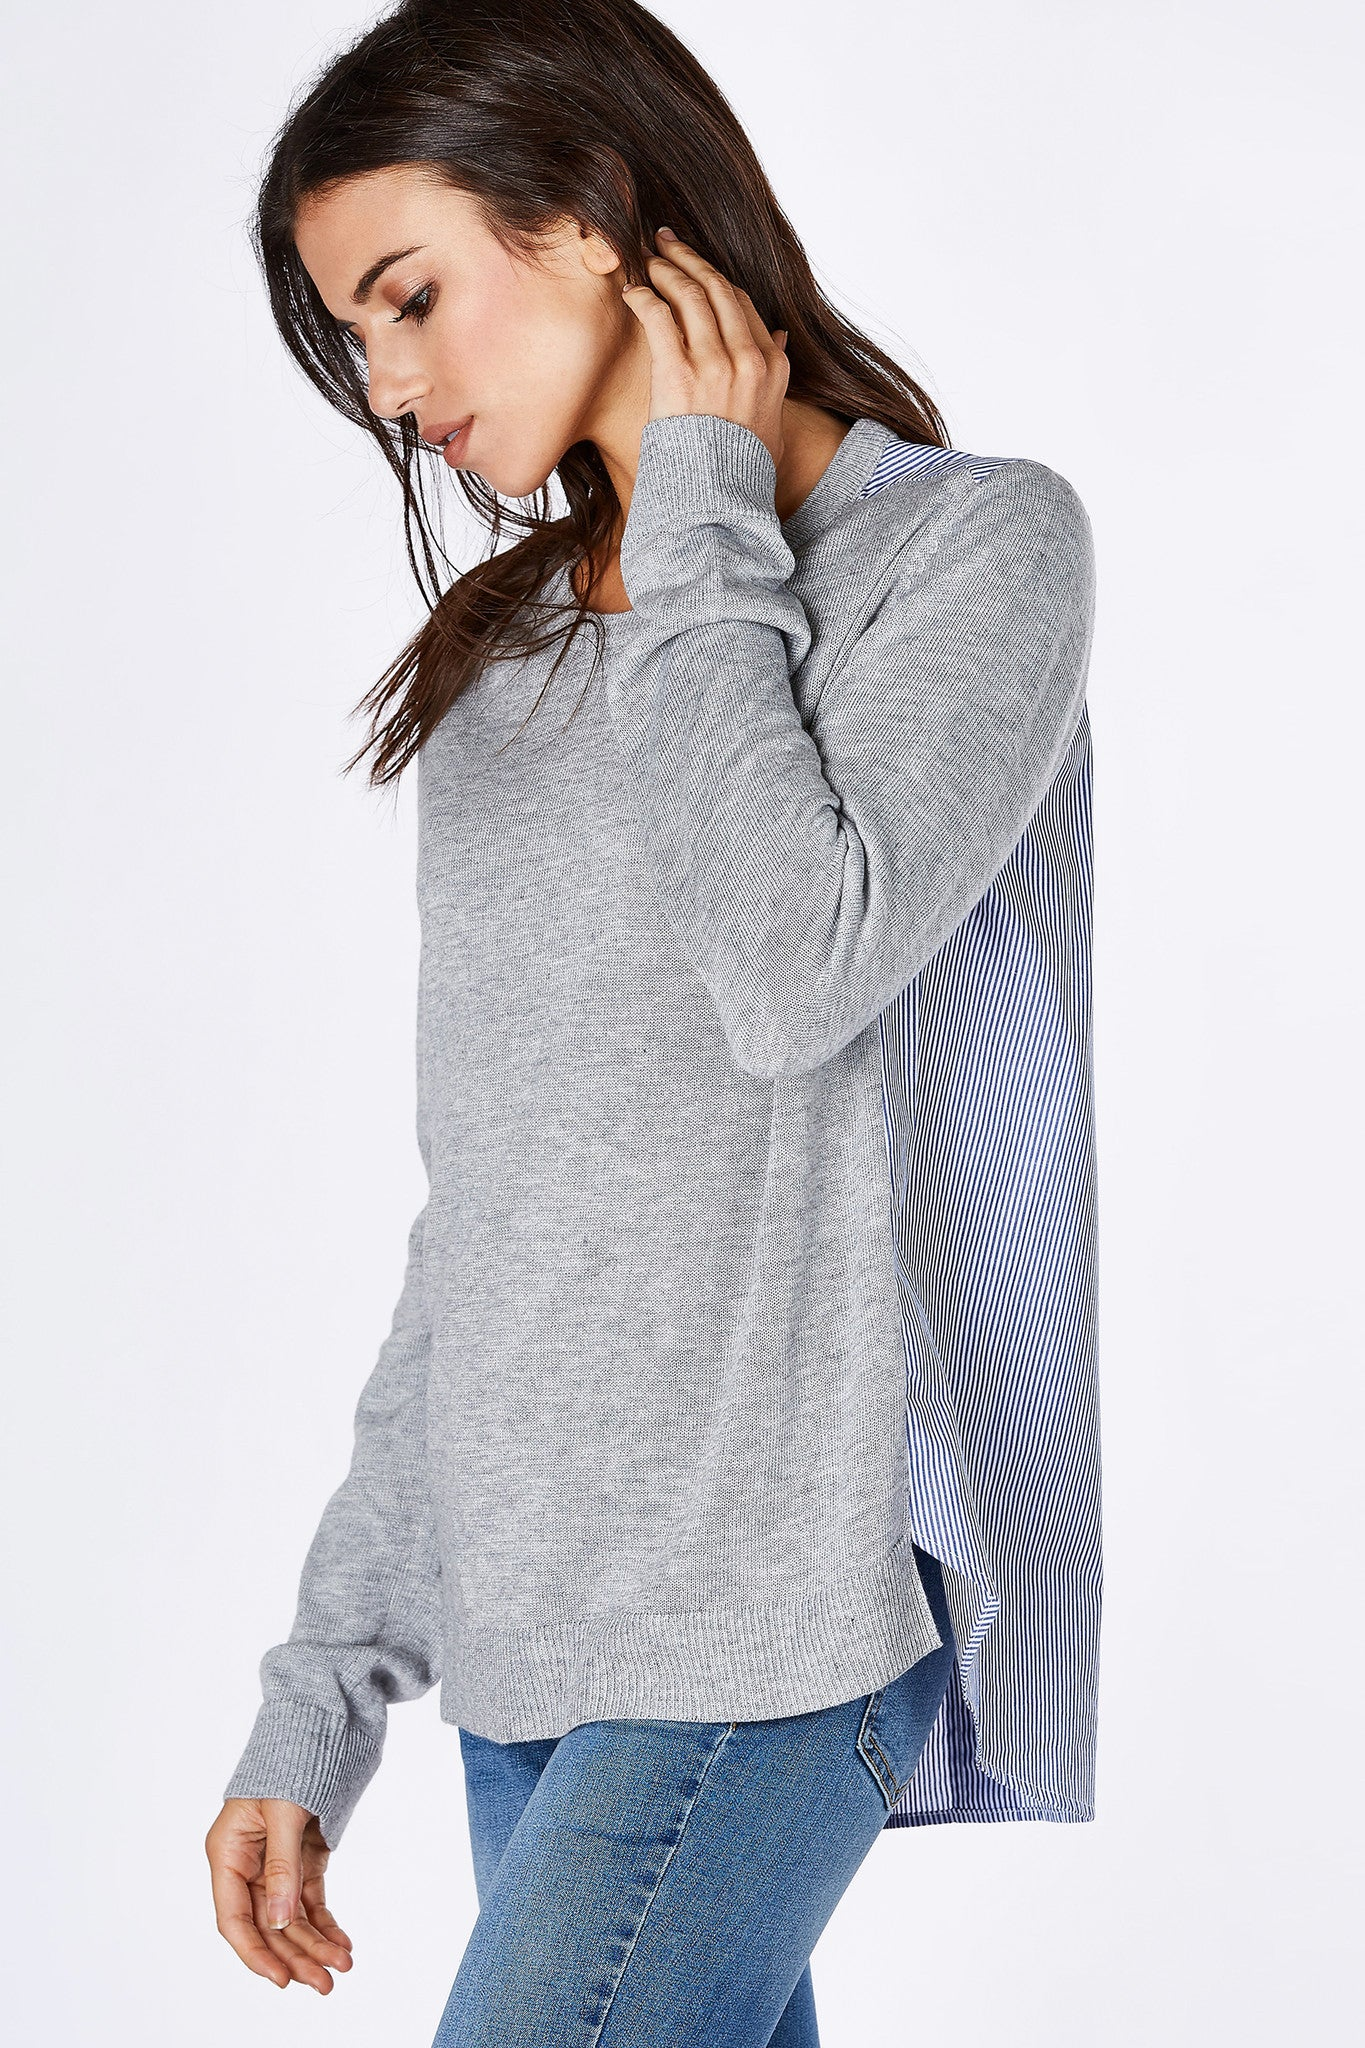 This is not your average top. This stylish piece features a sweater front with long cozy sleeves with a chic contrast back. Faux buttons down the back for a classic blouse design. Easy to style with denim jeans for a smart put together look!